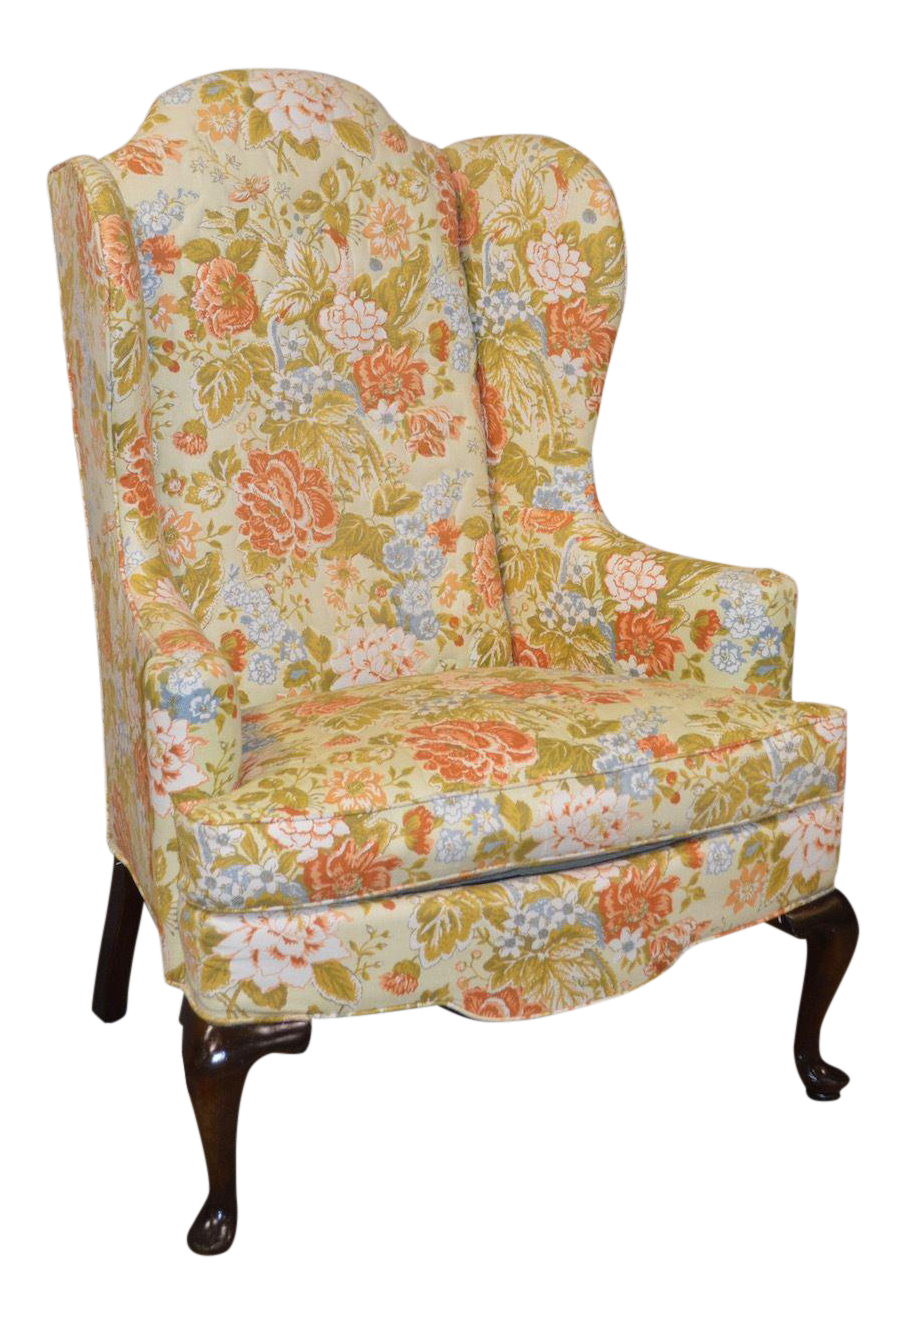 Fresh Drexel Floral Queen Anne Style Wing Chair | Chairish AC76